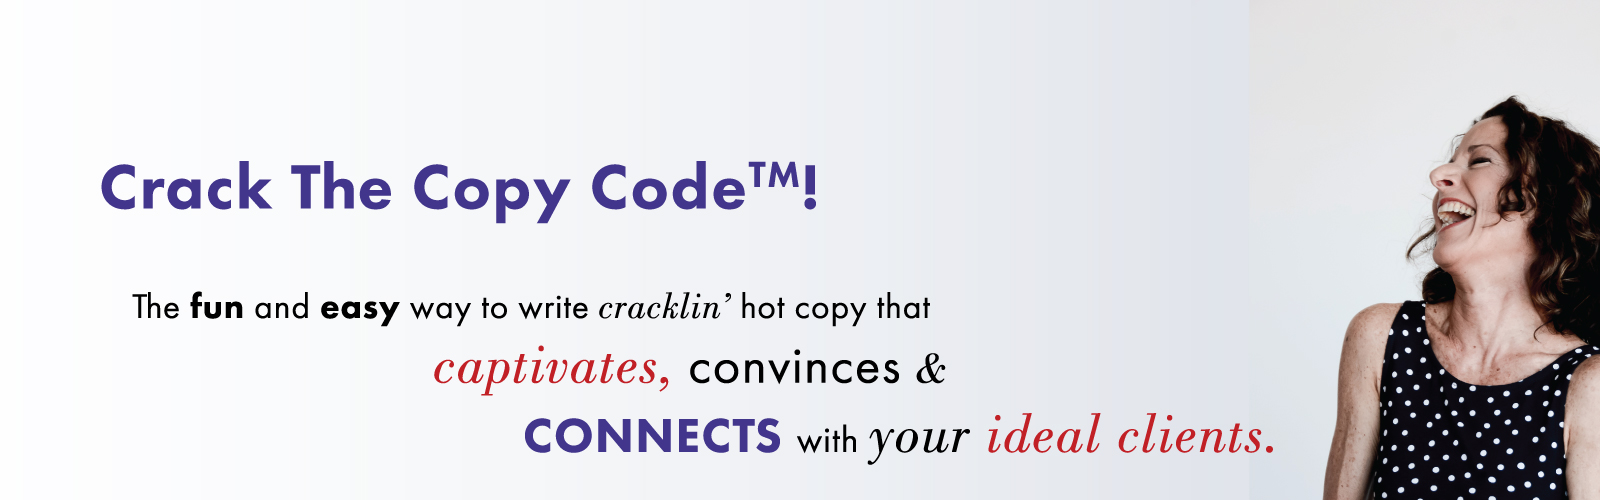 crack-copy-code-tm